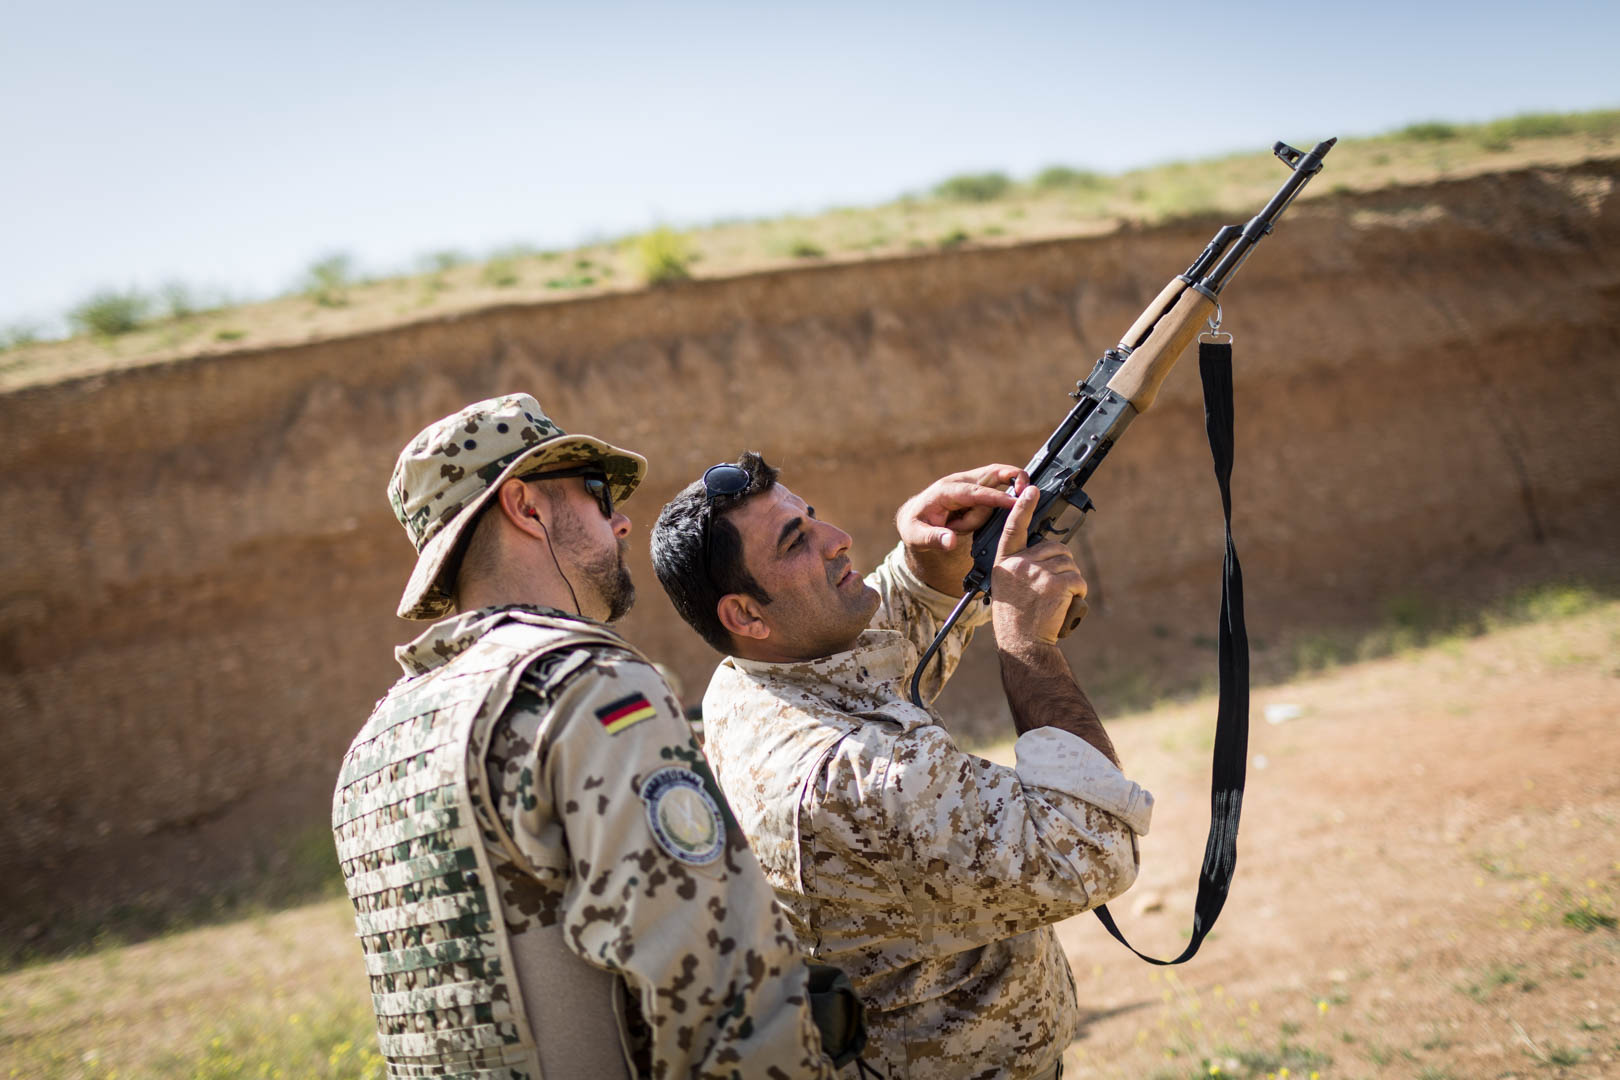 A German military adviser helps a Kurdish soldier checking the barrel of his AK-47.